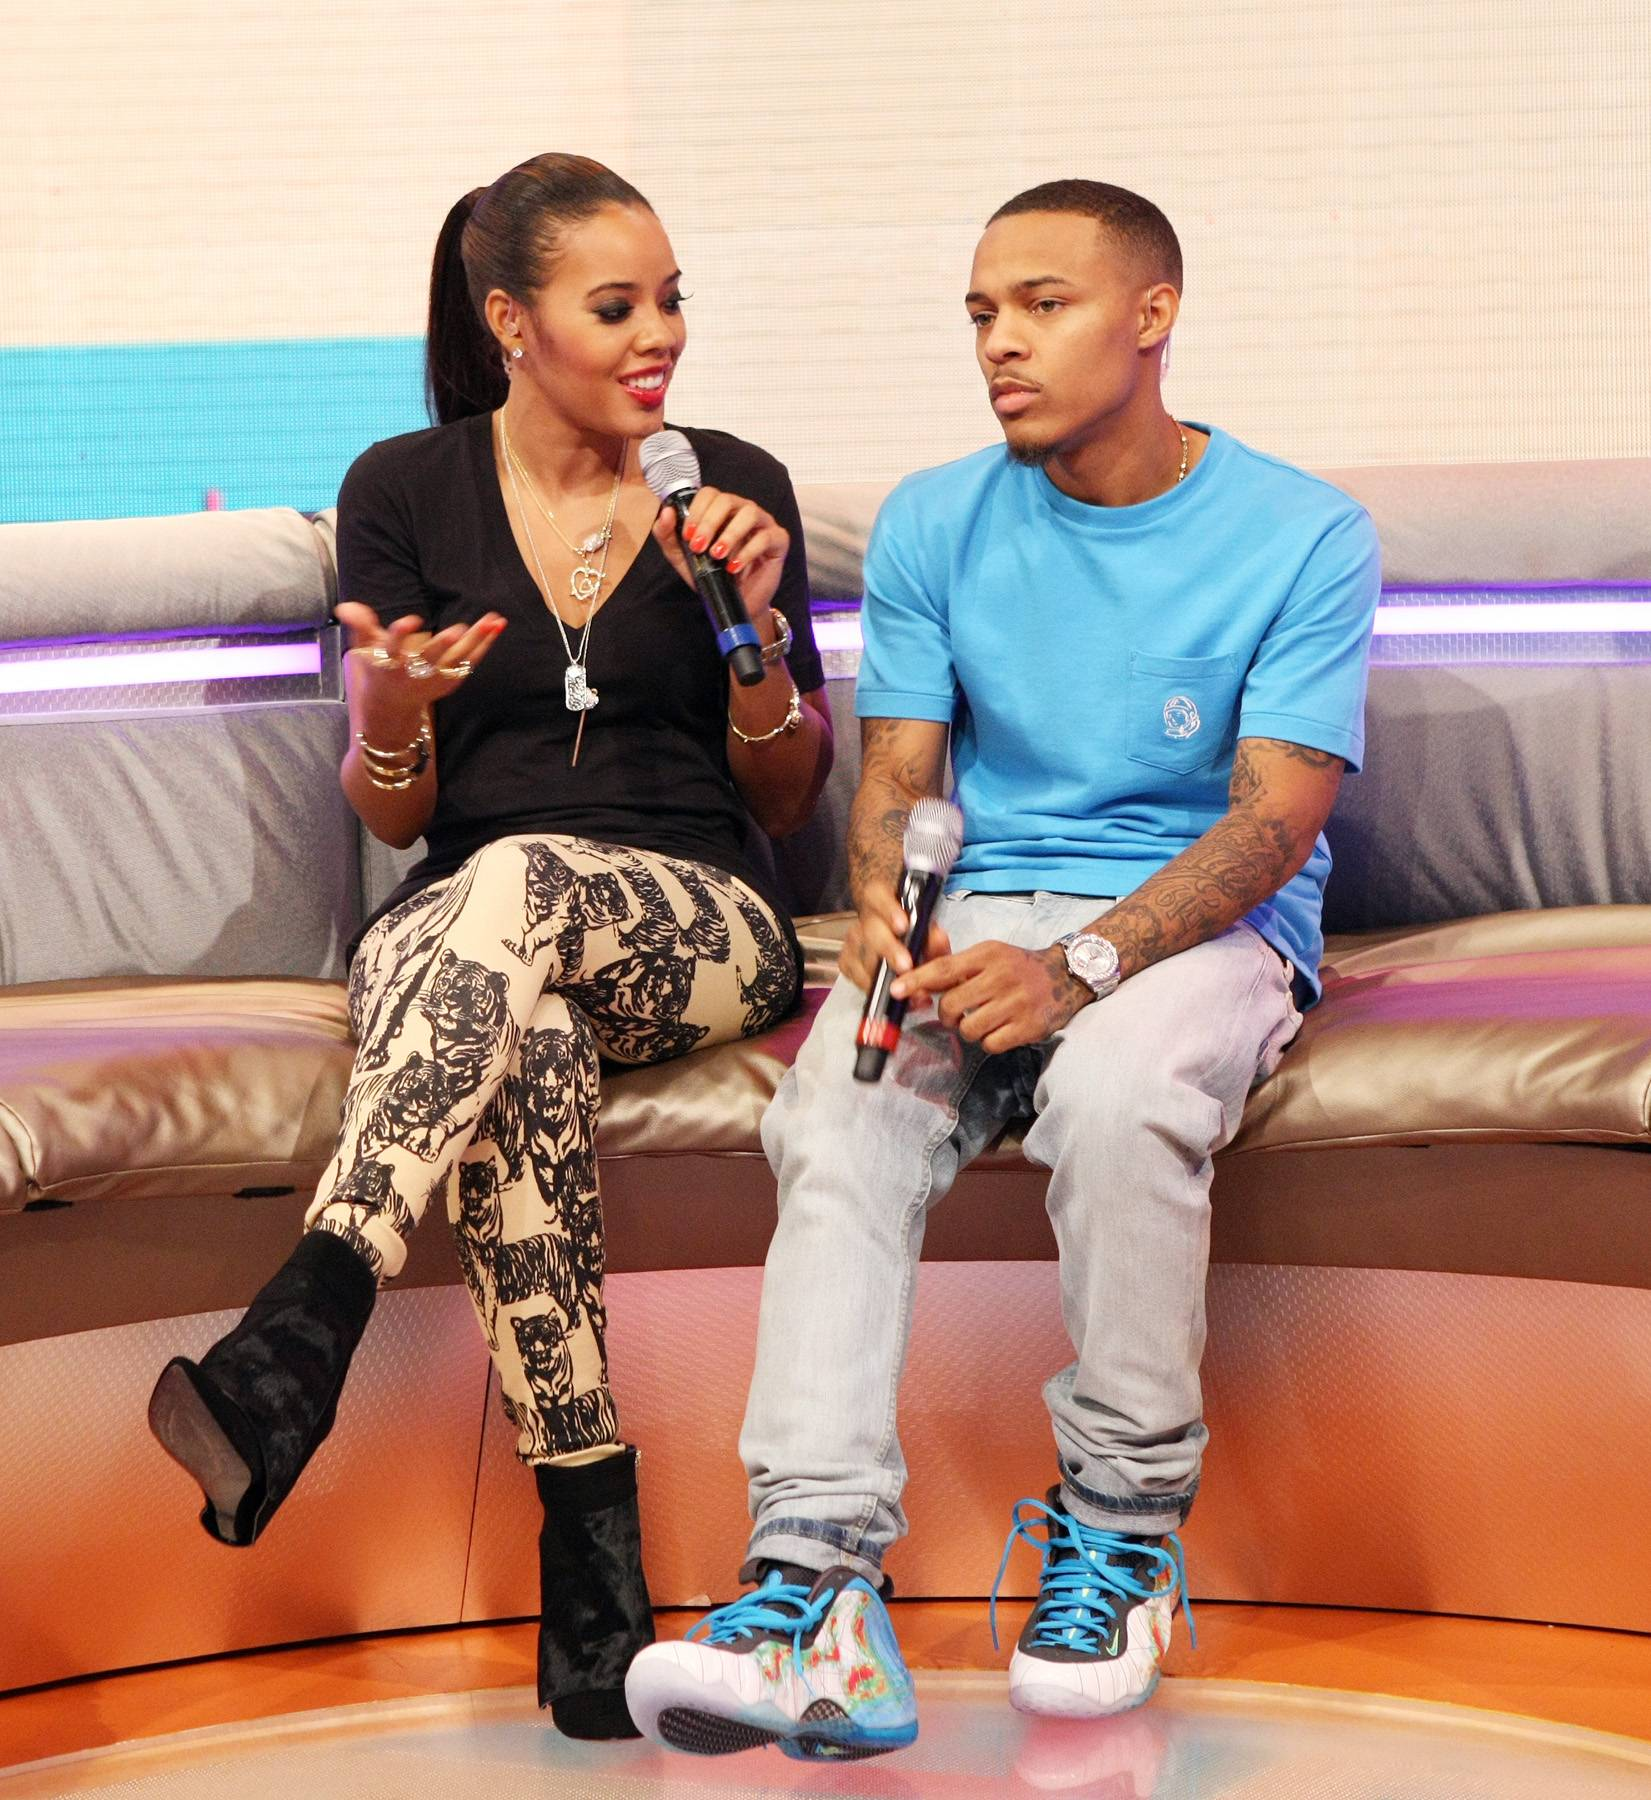 Smile a Little - Hosts Angela Simmons and Bow Wow on the 106 set. (Photo: Bennett Raglin/BET/Getty Images for BET)